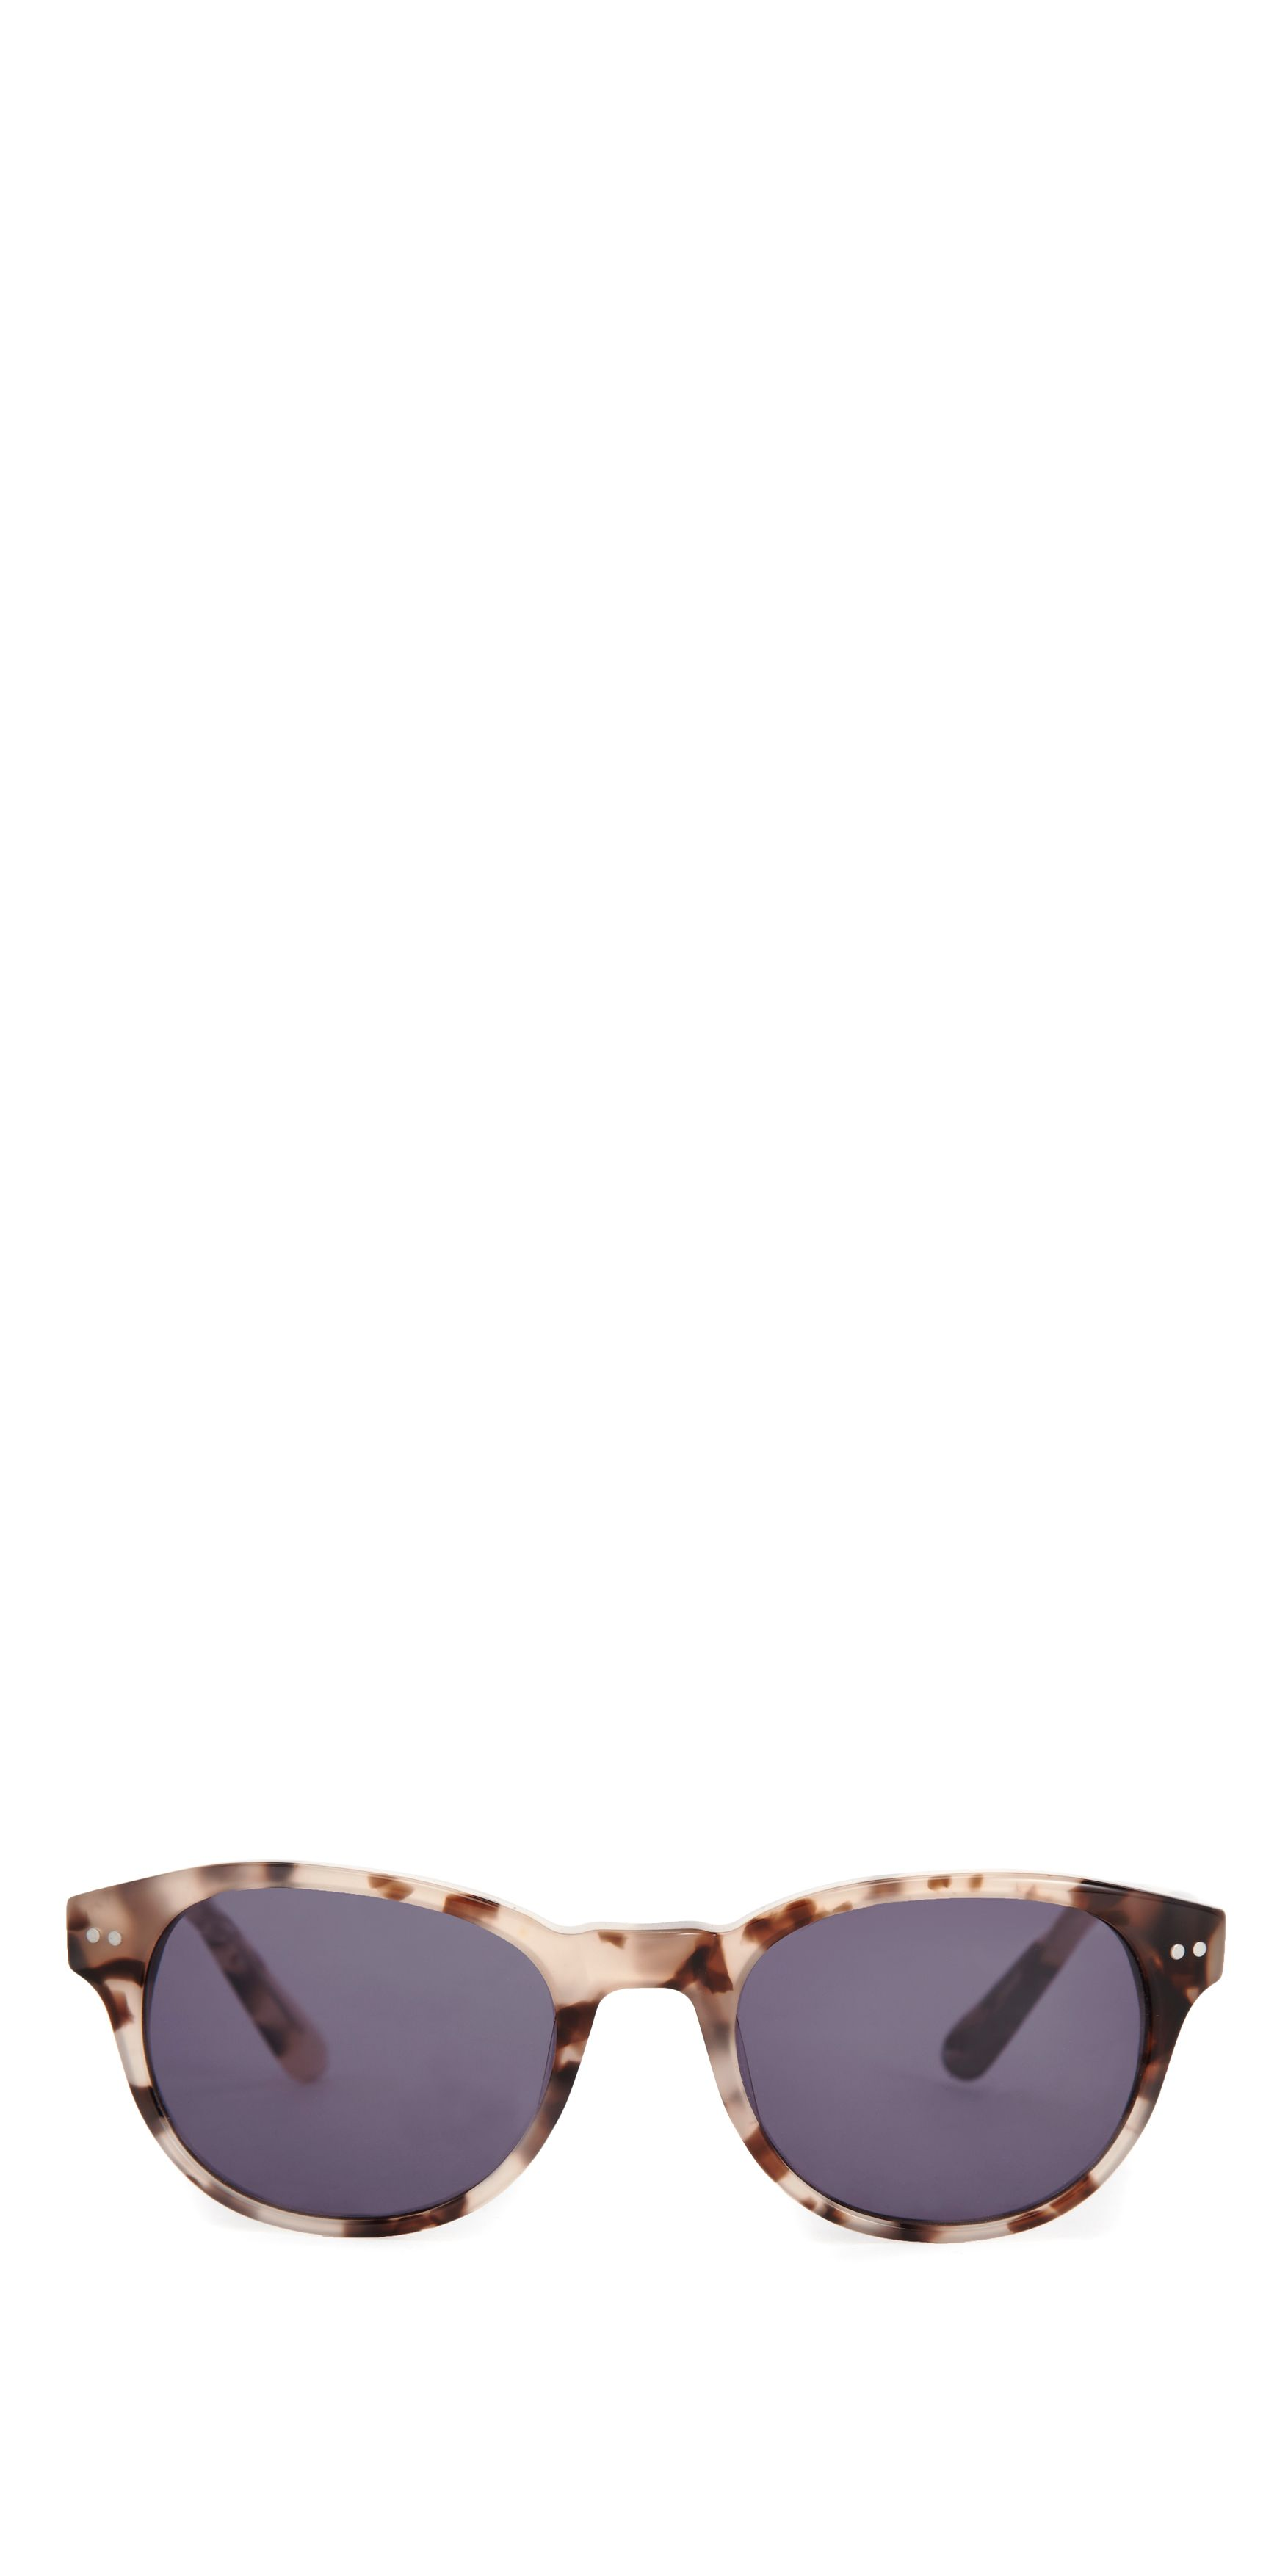 Faye mirrored sunglasses